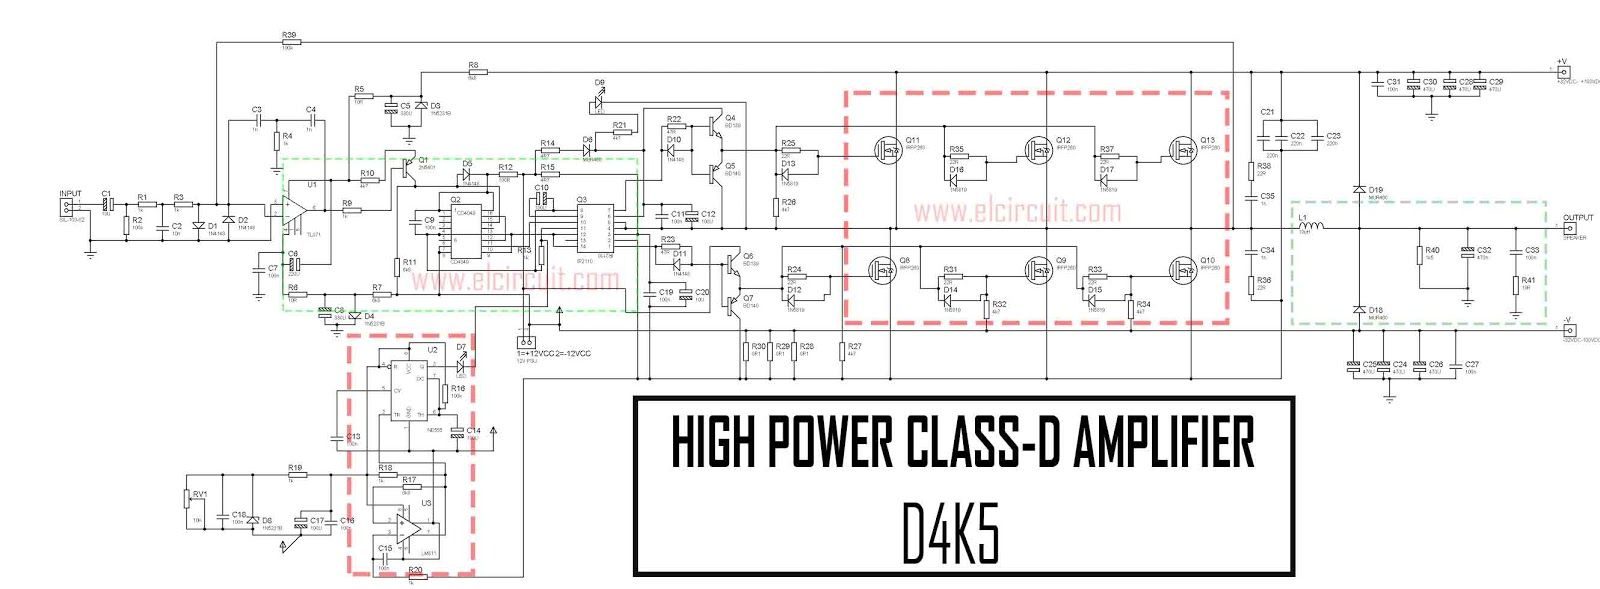 power amplifier circuit diagram class d d4k5 [ 1600 x 589 Pixel ]